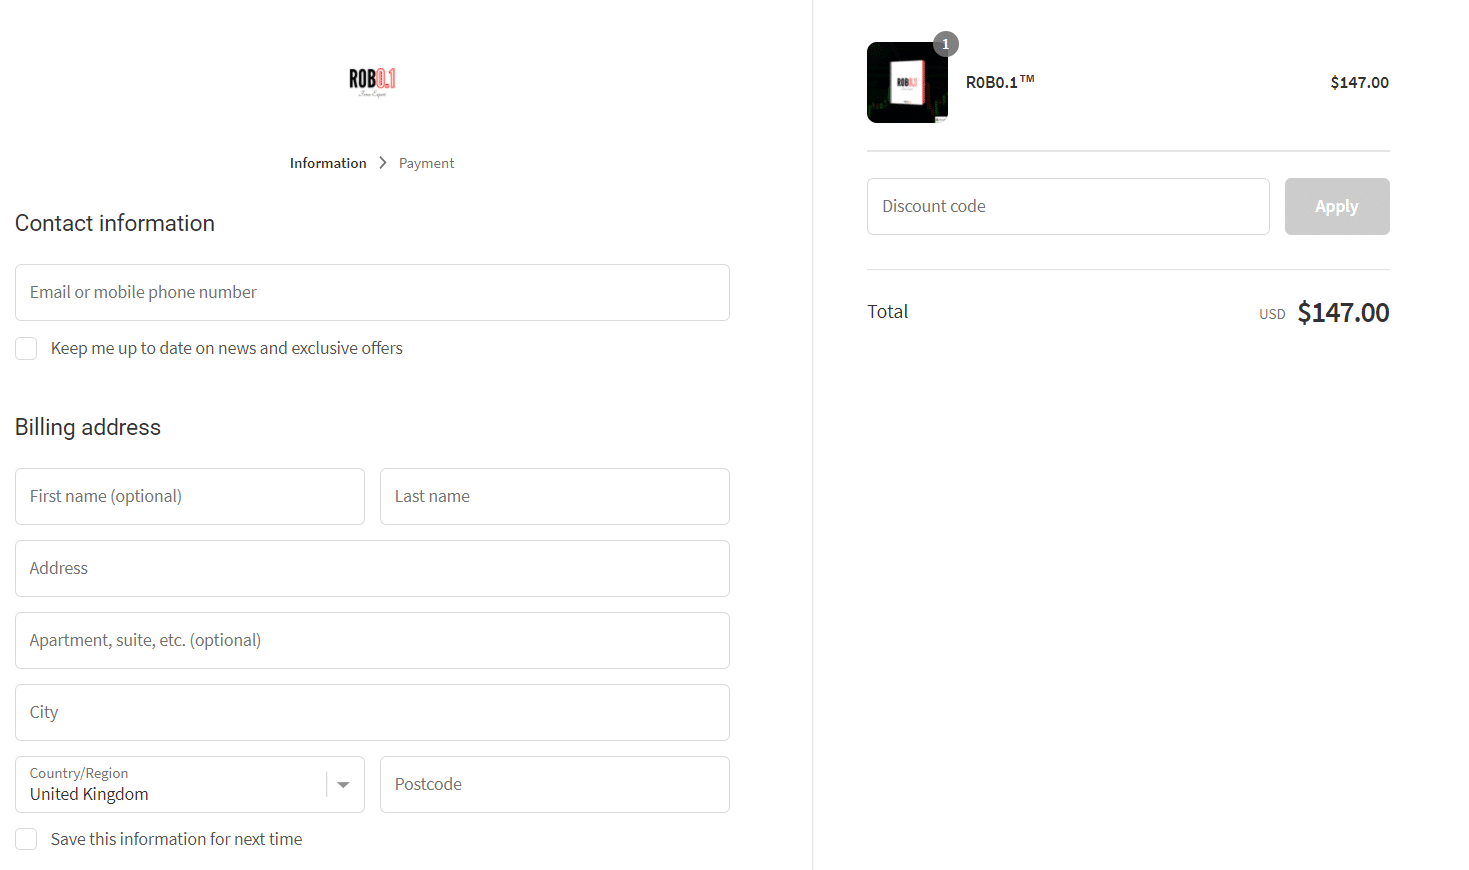 R0B0.1. We have to provide the developers with all our private and card information to get this robot.